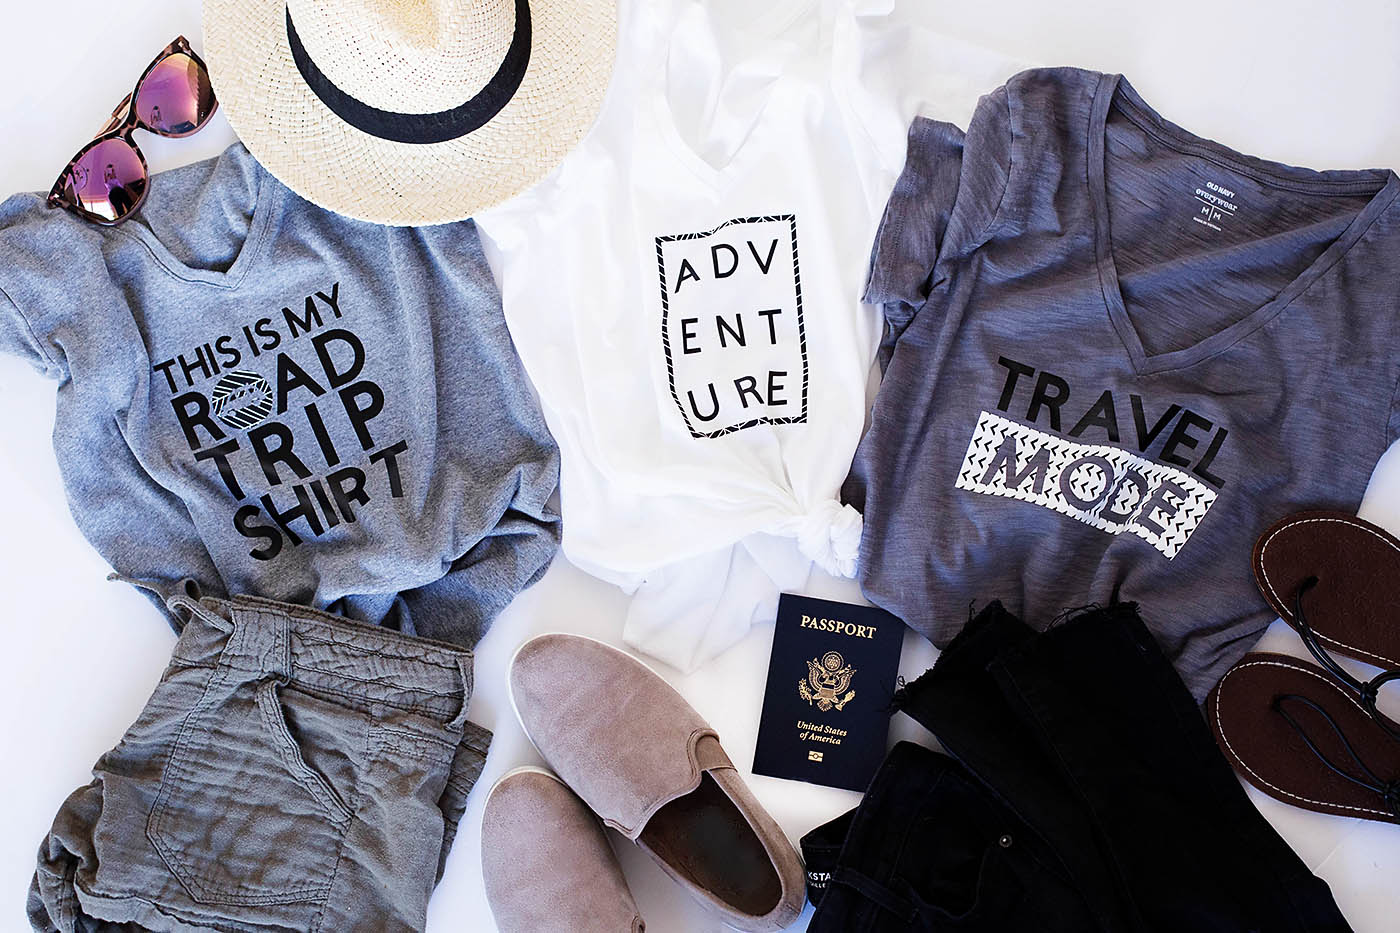 3 DIY Travel Tees with Cricut Patterned Iron On™